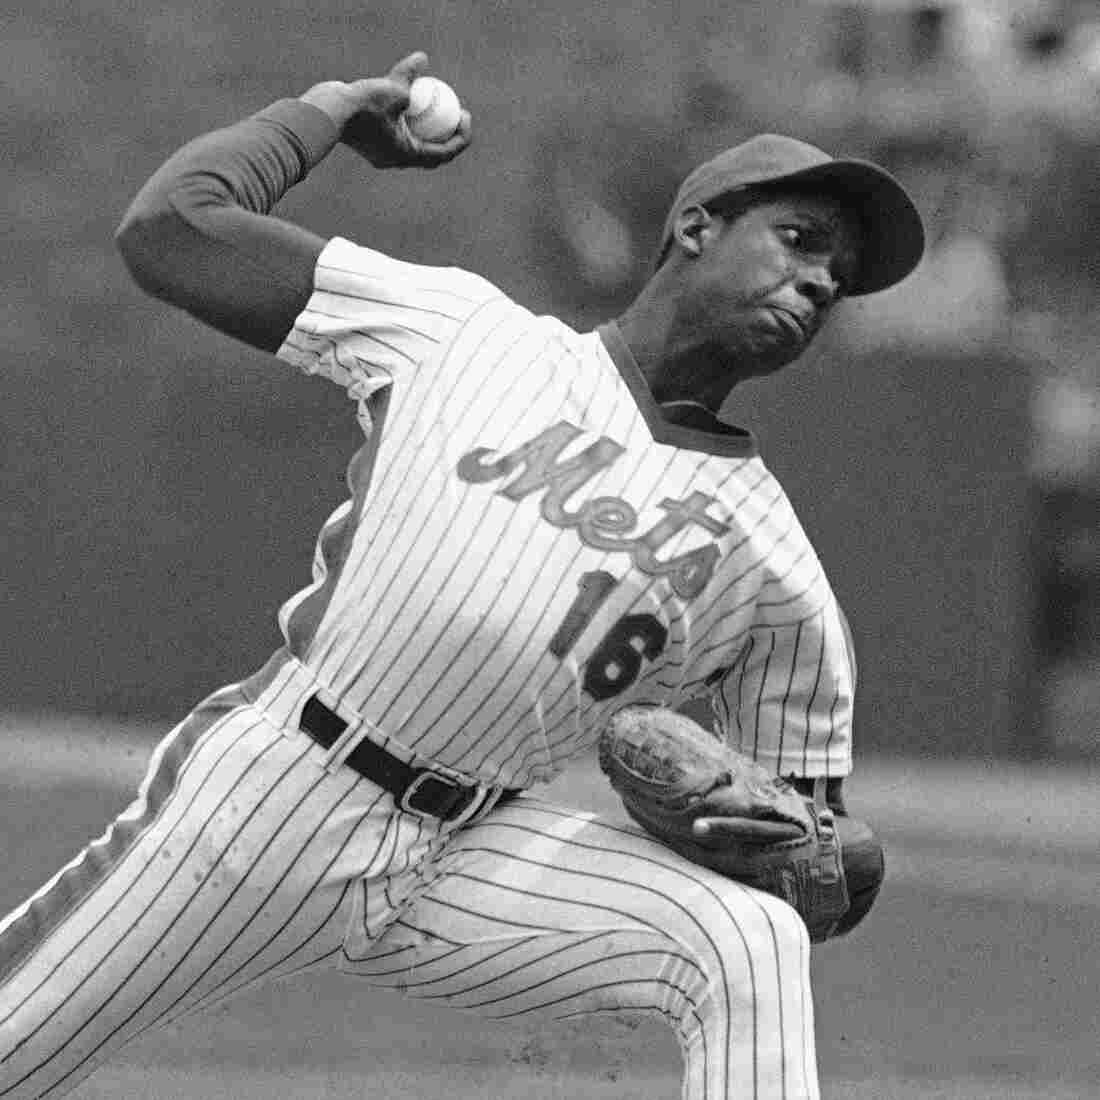 Mets phenom Dwight Gooden  pitches at New York's Shea Stadium on May 6, 1984.